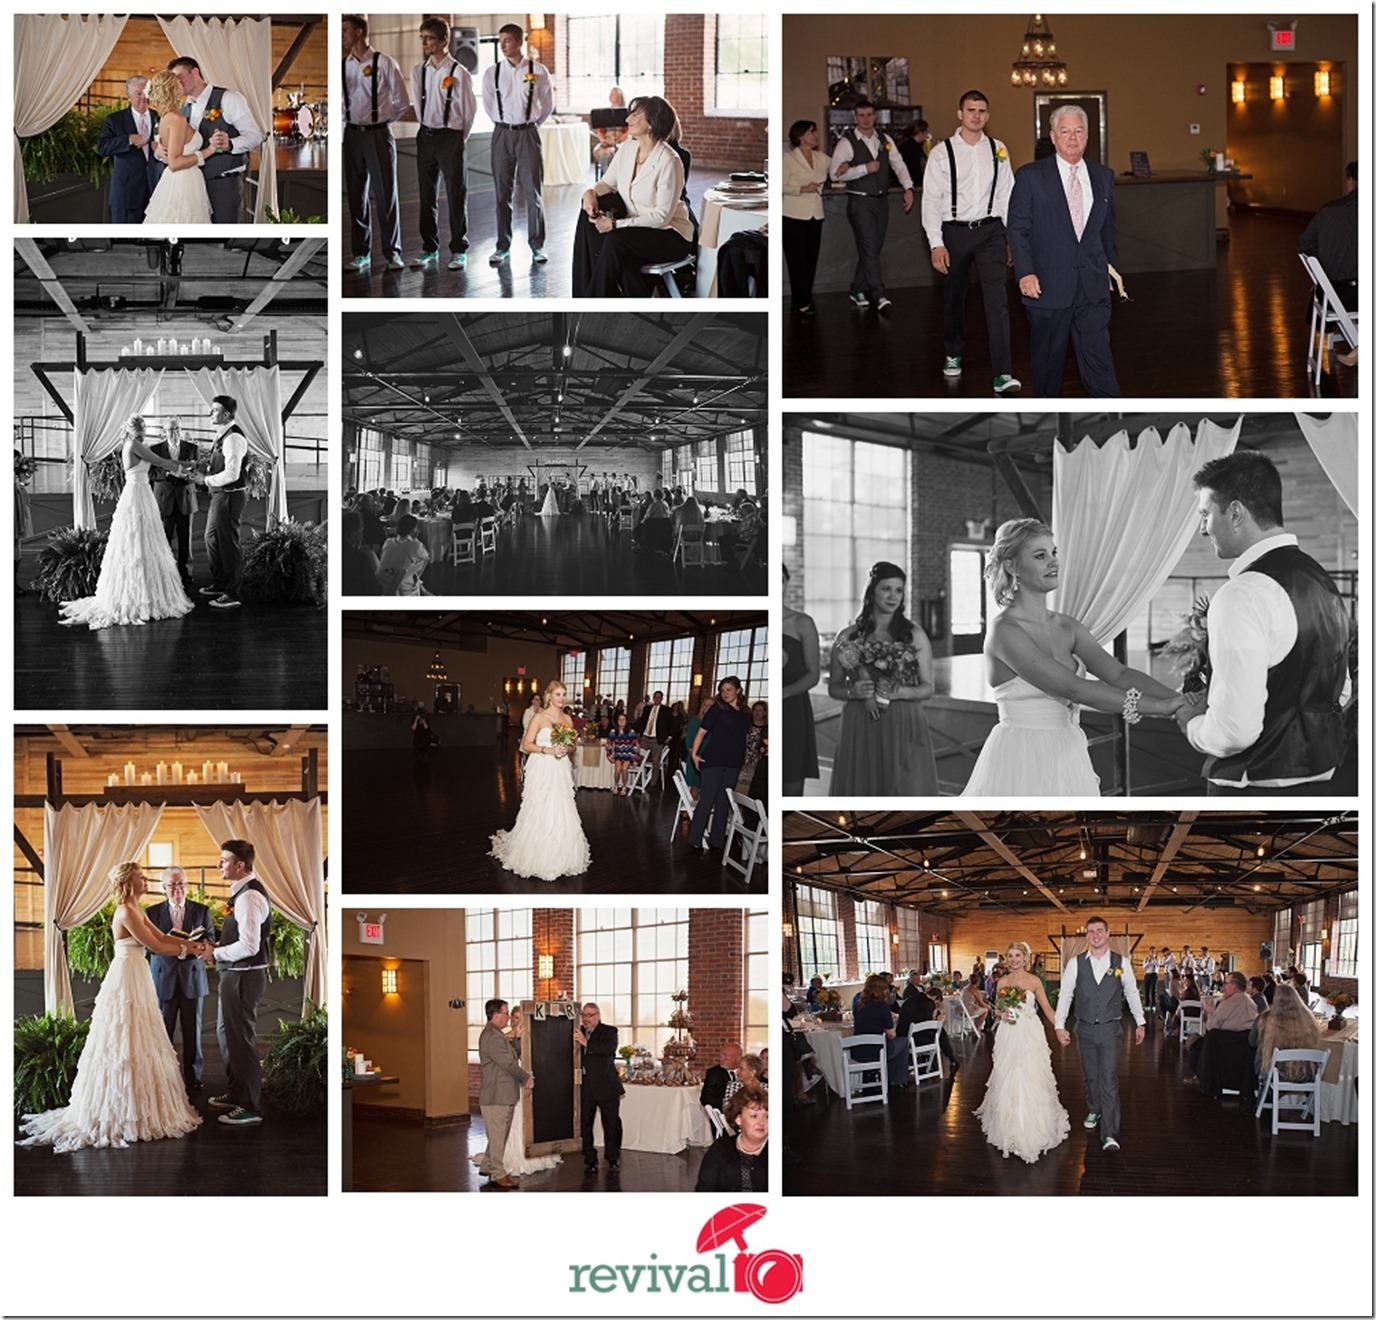 A Rustic Fall Wedding at The Crossing at Hollar Mill in Hickory, NC Photography by Revival Photography NC Wedding Photographers in North Carolina Revival Photography Photo